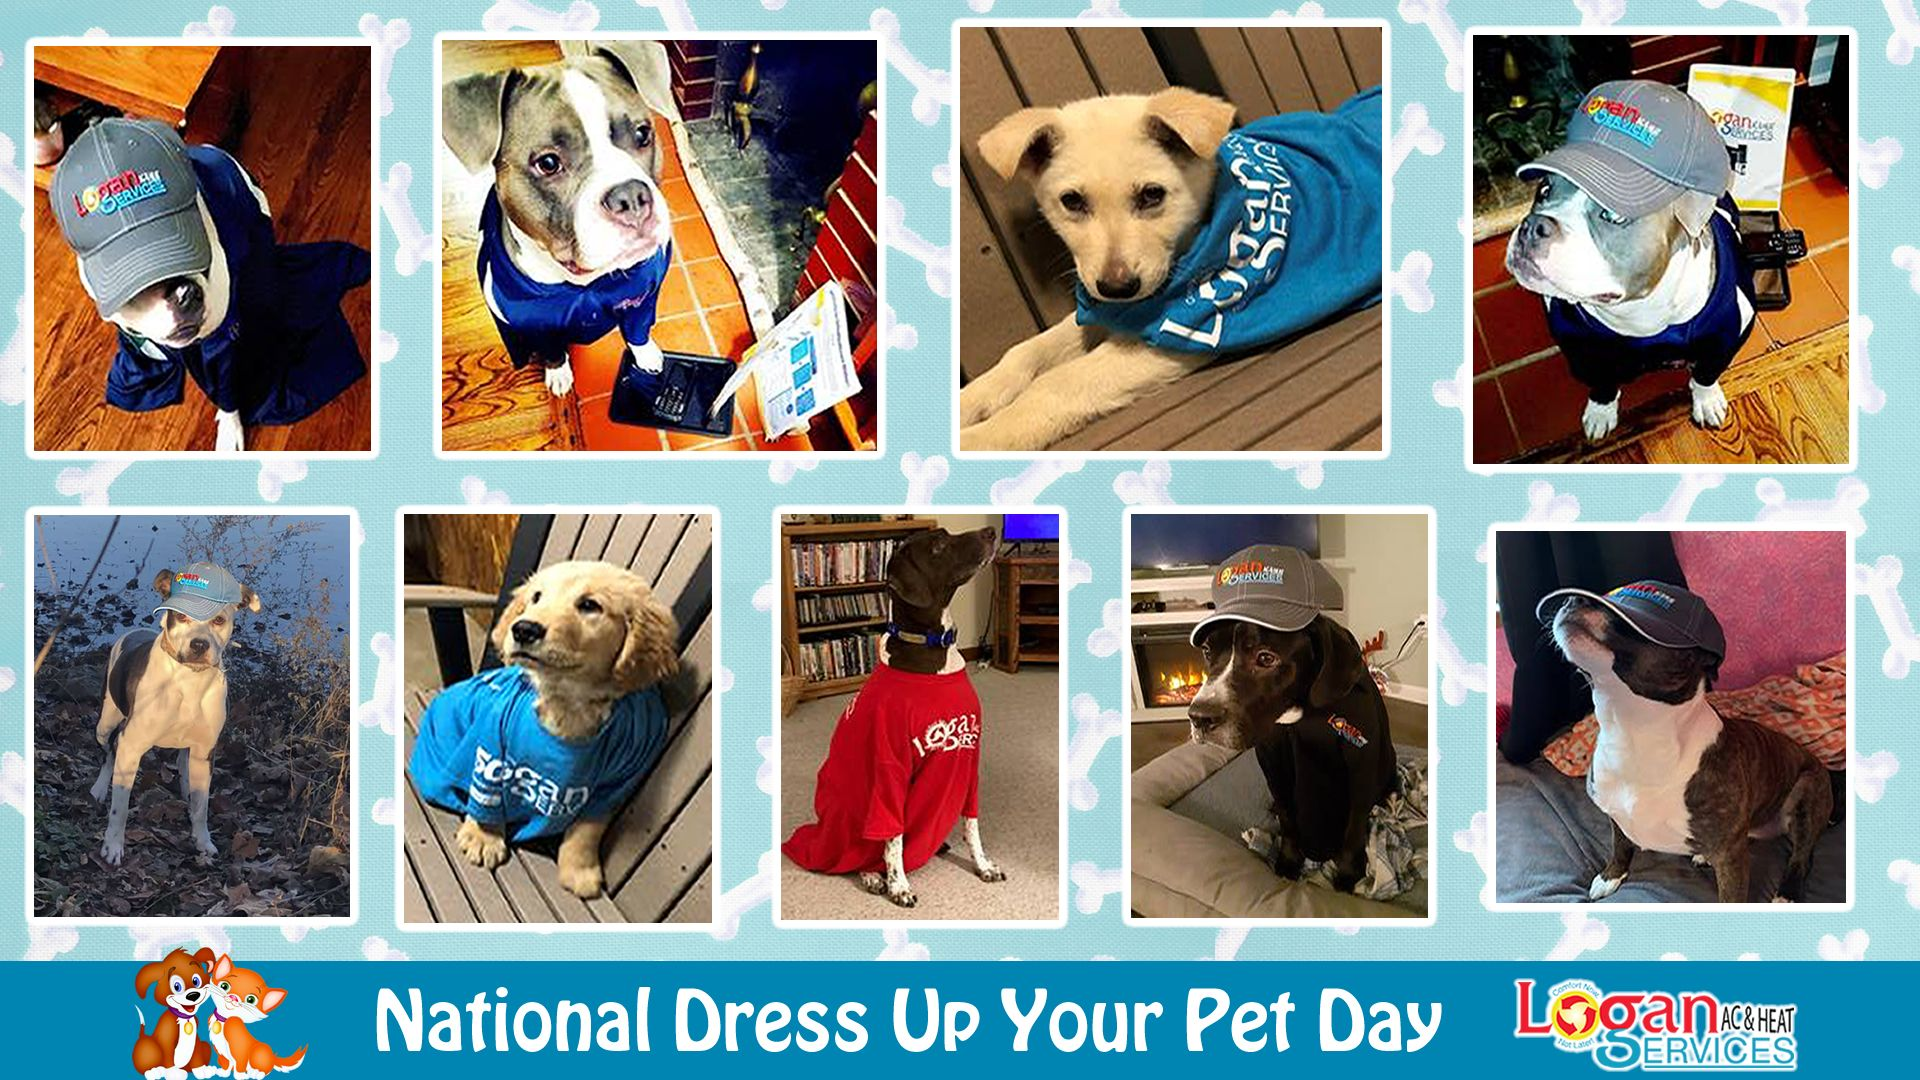 Dress Up Your Pet Day in 2020 Pet day, Your pet, Pets